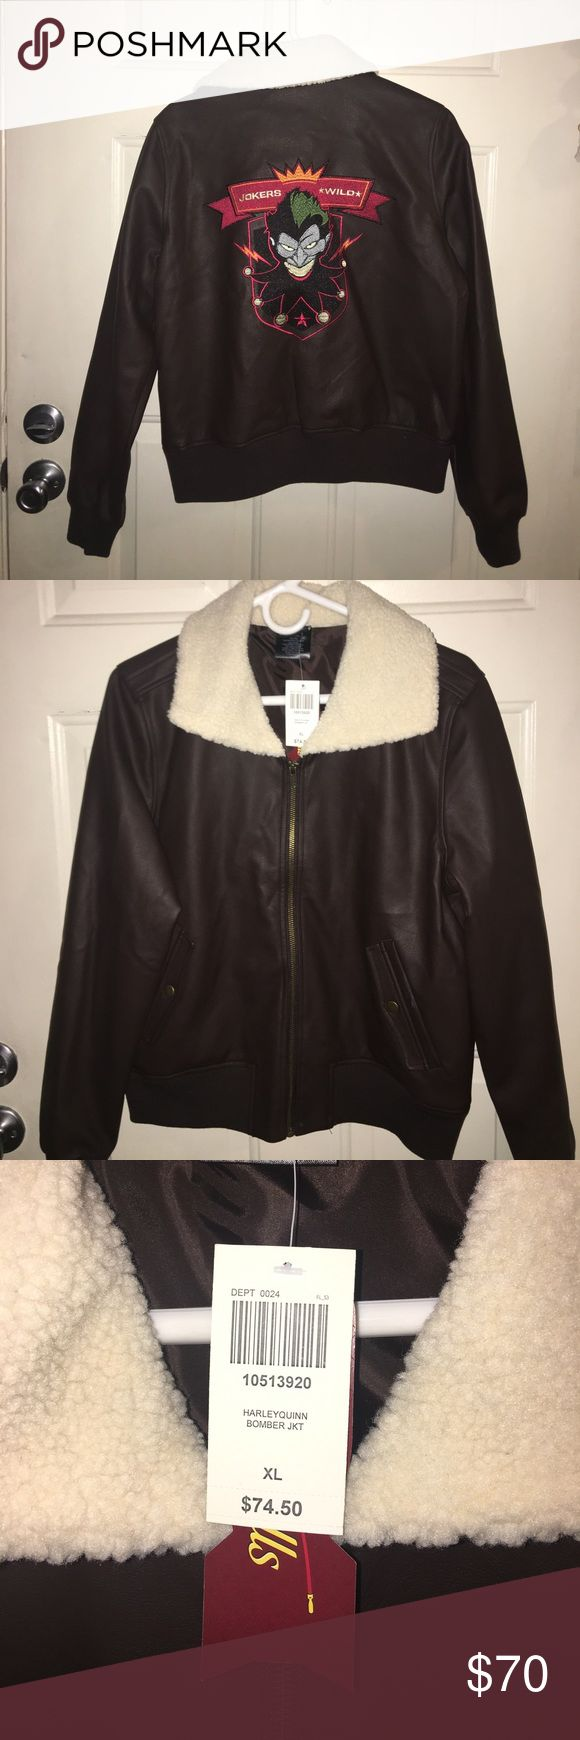 Authentic D.C. Bombshells Jokers Wild Jacket Authentic Hot Topic D.C. Bombshells Jokers Wild Pleather Bomber Jacket. NWT, size XL, comes from a smoke free home. No trades or low ball offers please. Hot Topic Jackets & Coats